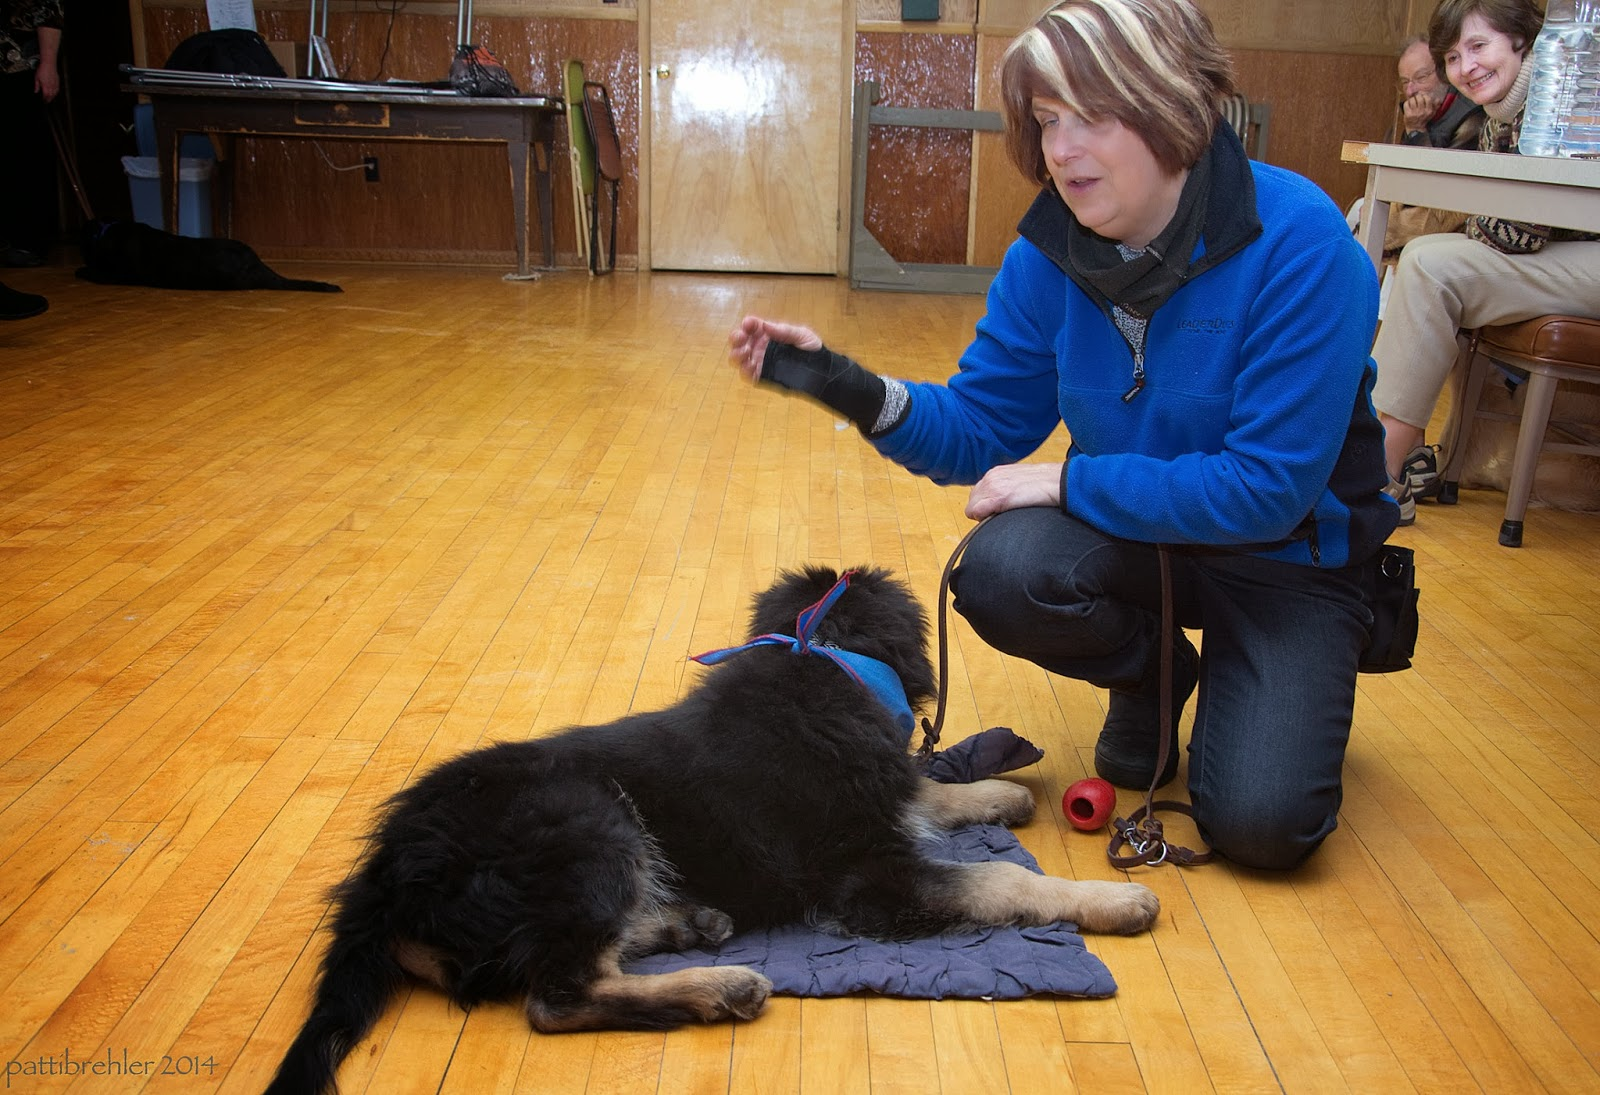 "A woman dressed in a blue fleece jacket and blue jeans is kneeling on one knee on a wood floor facing a small german shepherd puppy. He is lying on a blue ""mat"" and facking her. She is gestering with her right hand, which has a black wrist brace on it, and is holding the pup's brown leather leash with her left hand at her right knee. A man and a woman are in the background on the right side smiling and watching the two."